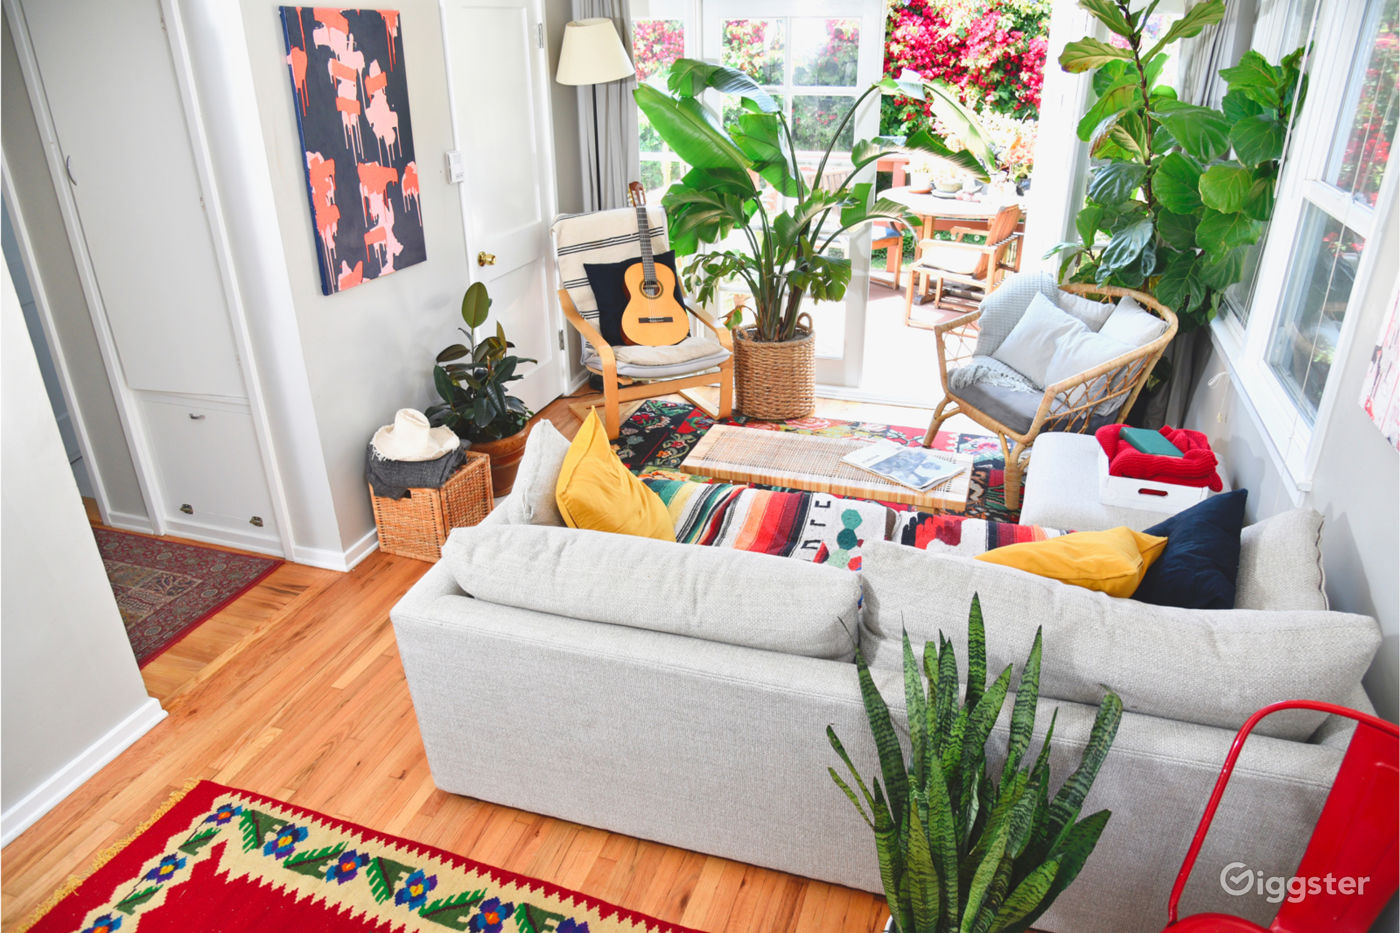 Beach House with Tropical Plants in Venice Los Angeles Rental